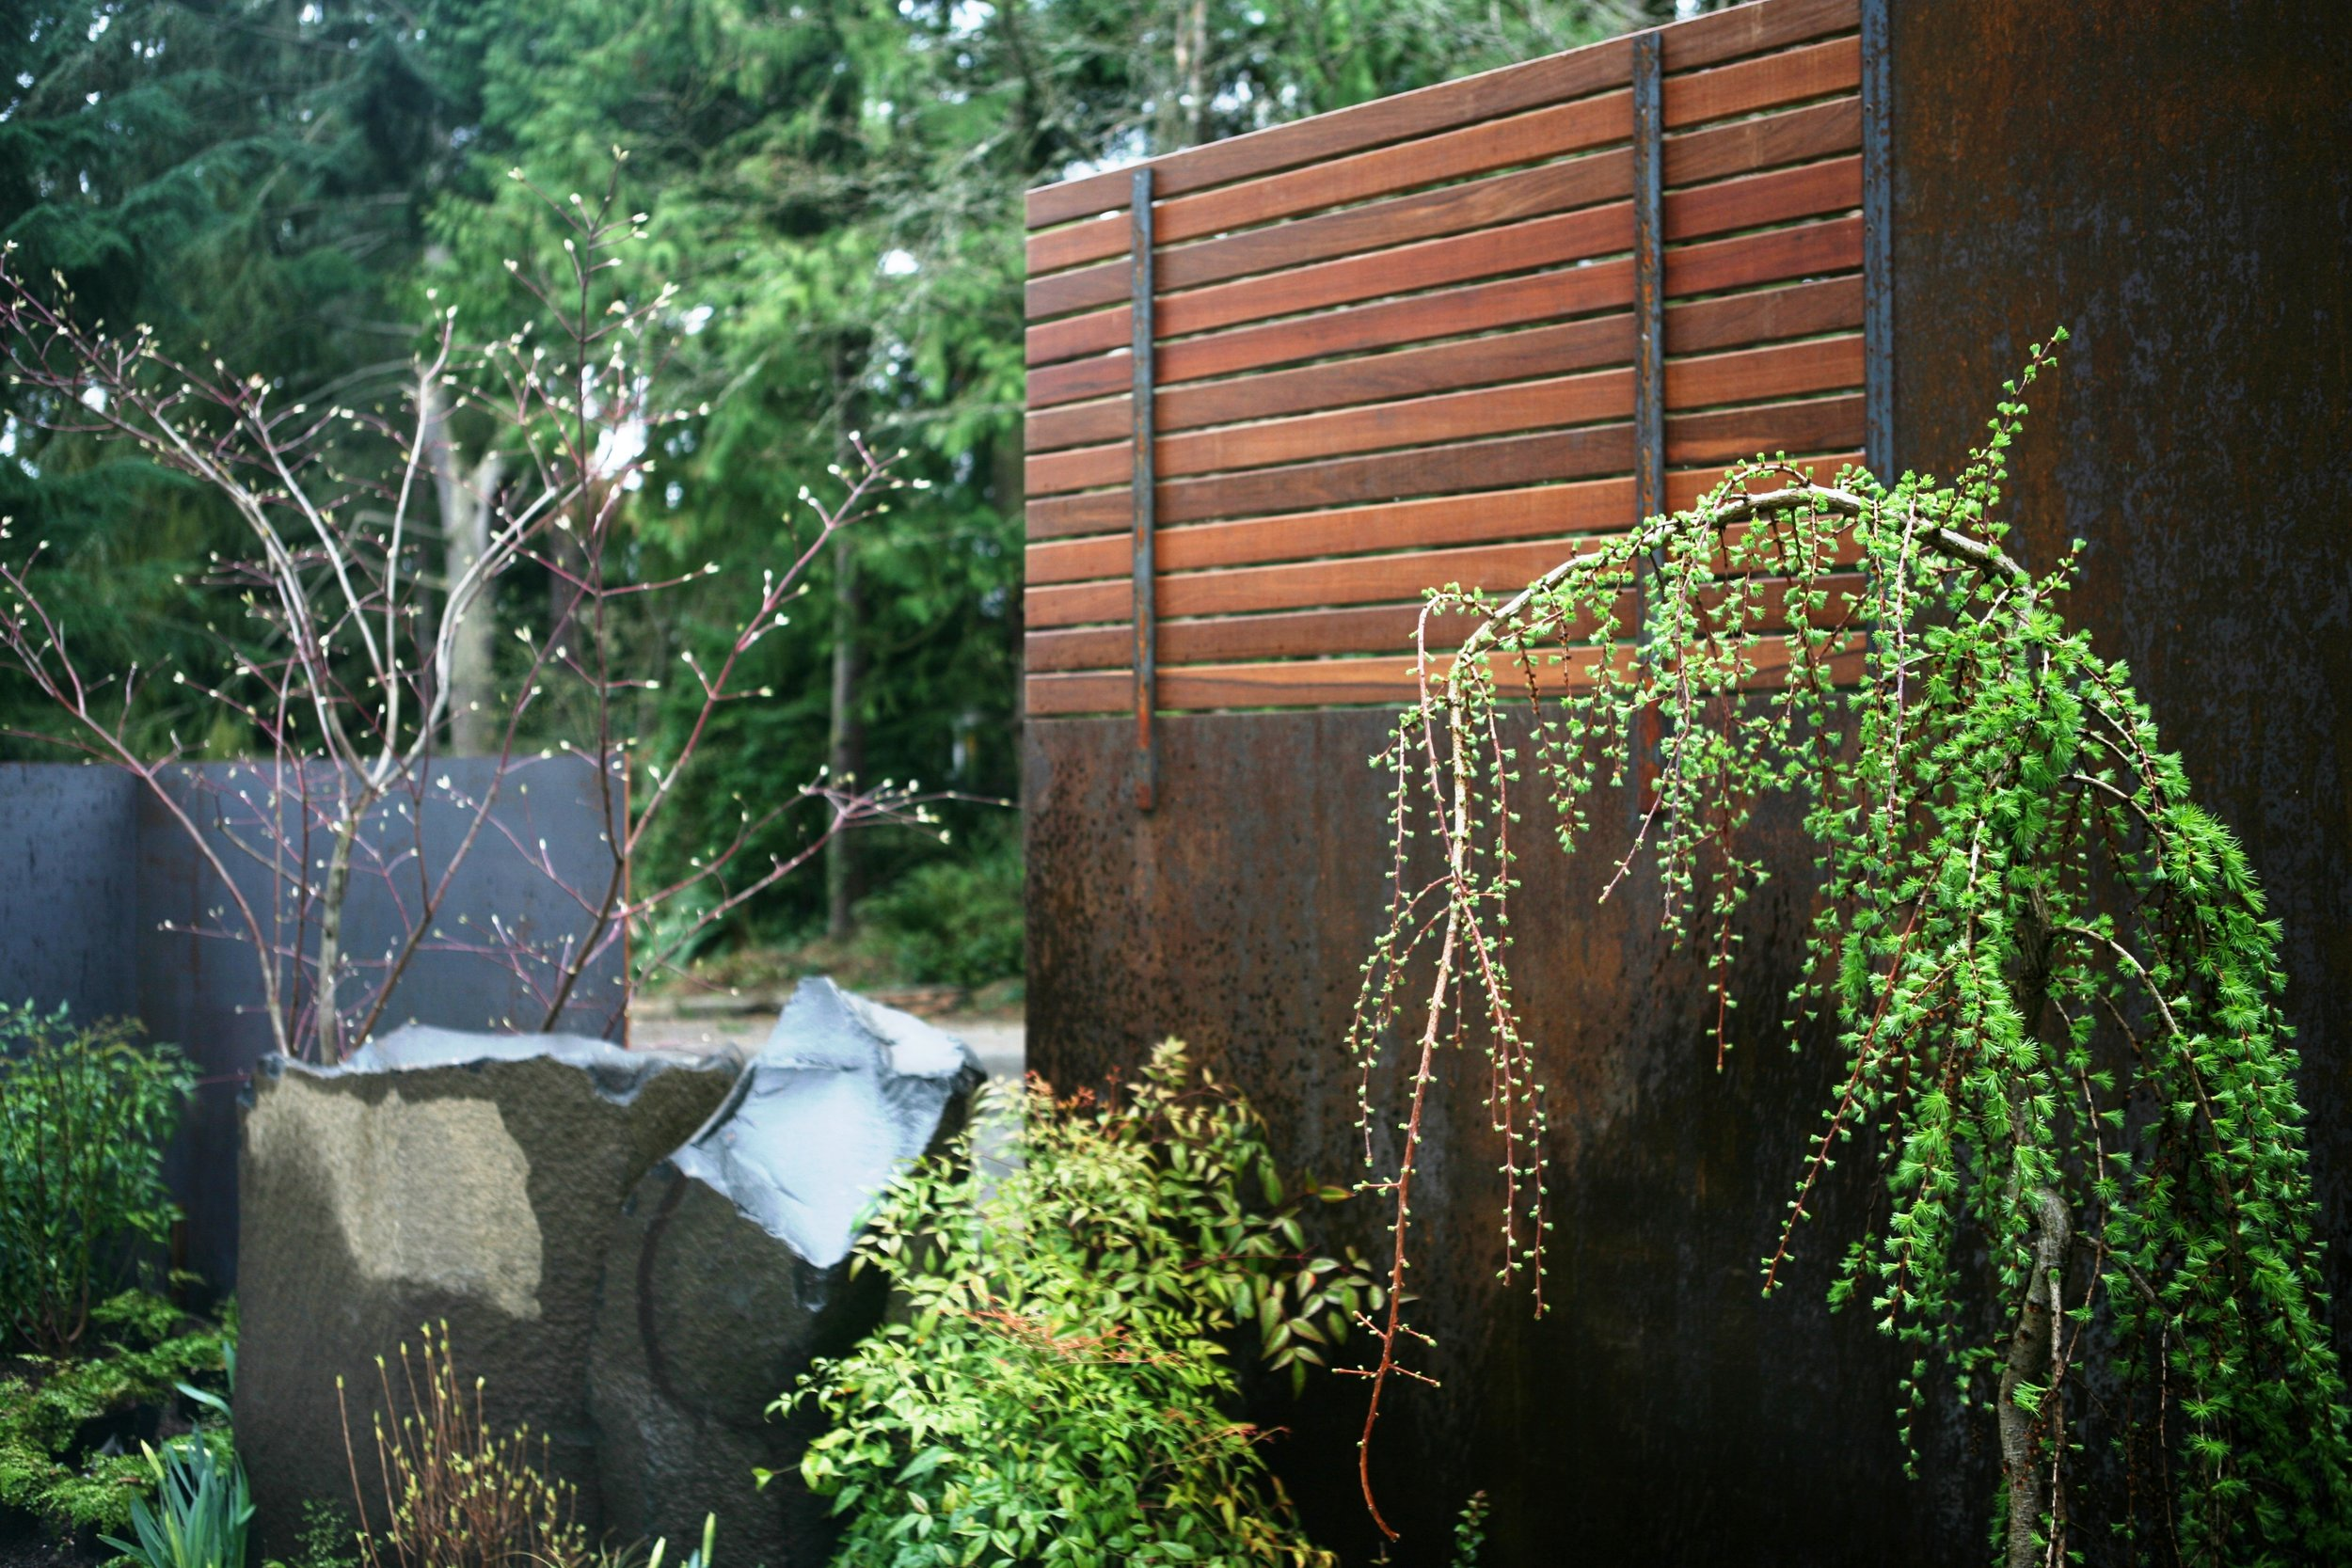 There is a blend of nature,engineering and art in this garden. While the stone and metal is very strong, it is balance with delicate-looking plants (they are actually quite hardy).  The metal sections in the photo to the right had to be set in concrete in such a way that the gap between them was consistent and straight.  The precise placement of extremely heavy stone and metal components of this garden are a good example of design and implementation coming together.